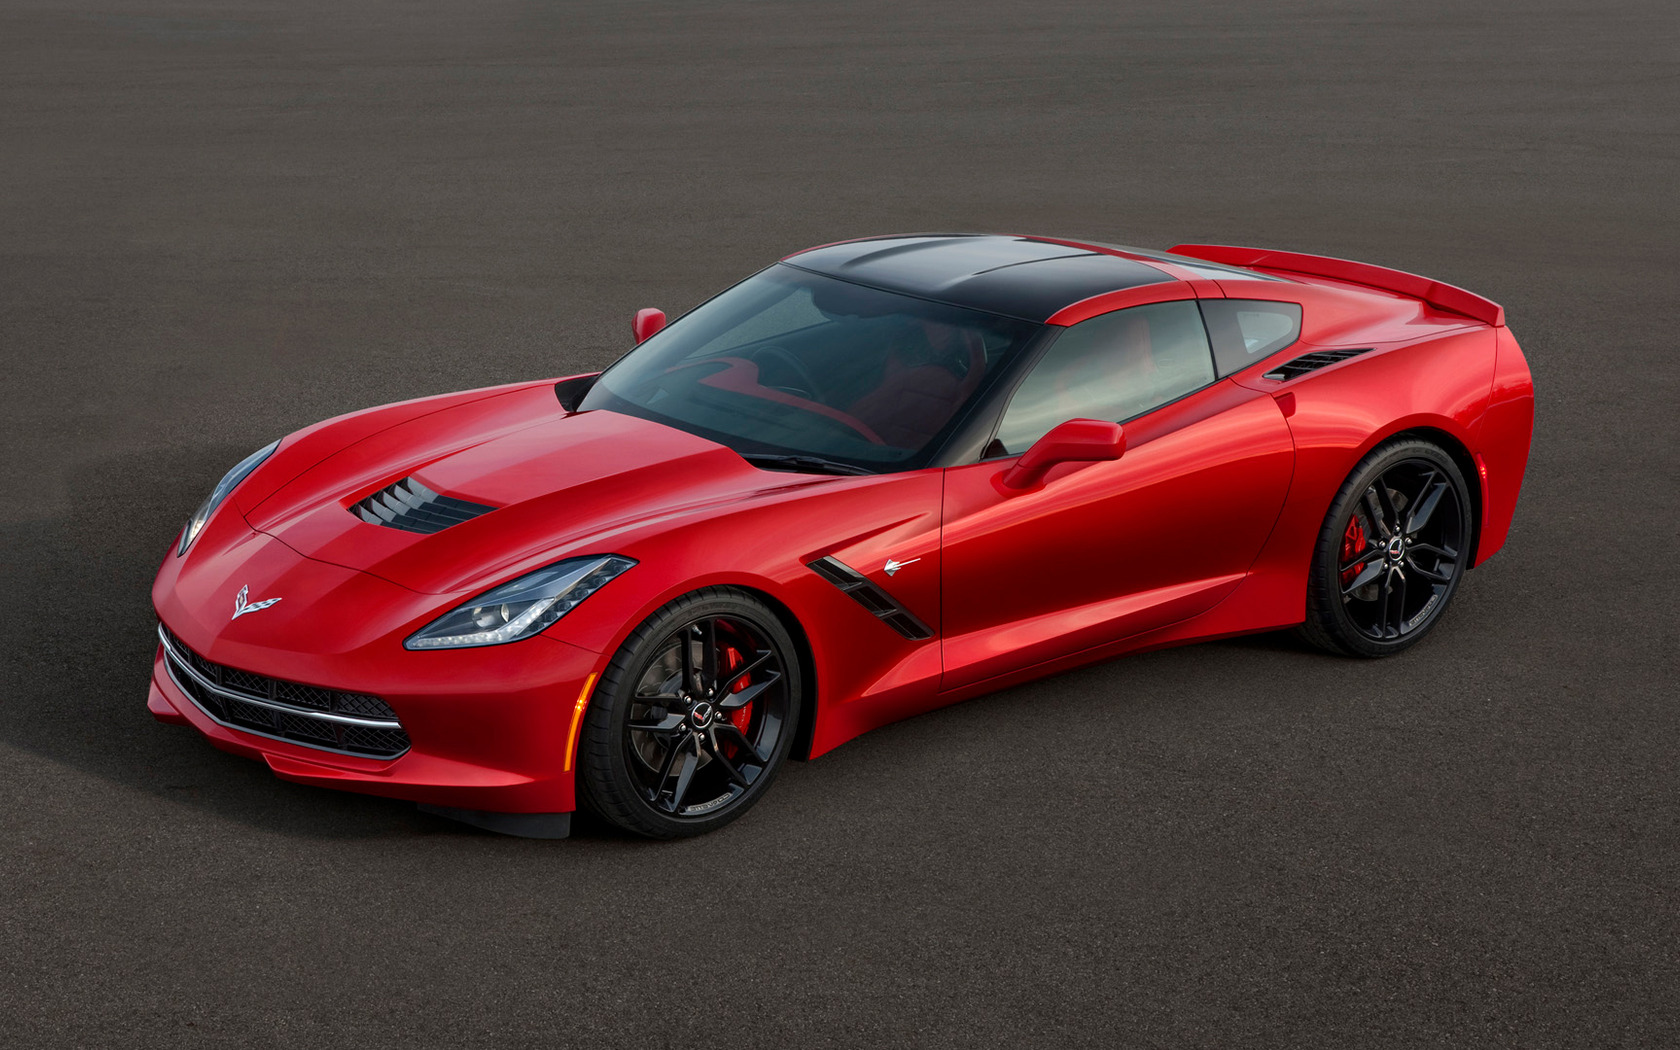 2014 Chevrolet Corvette Stingray wallpaper 44 1680x1050